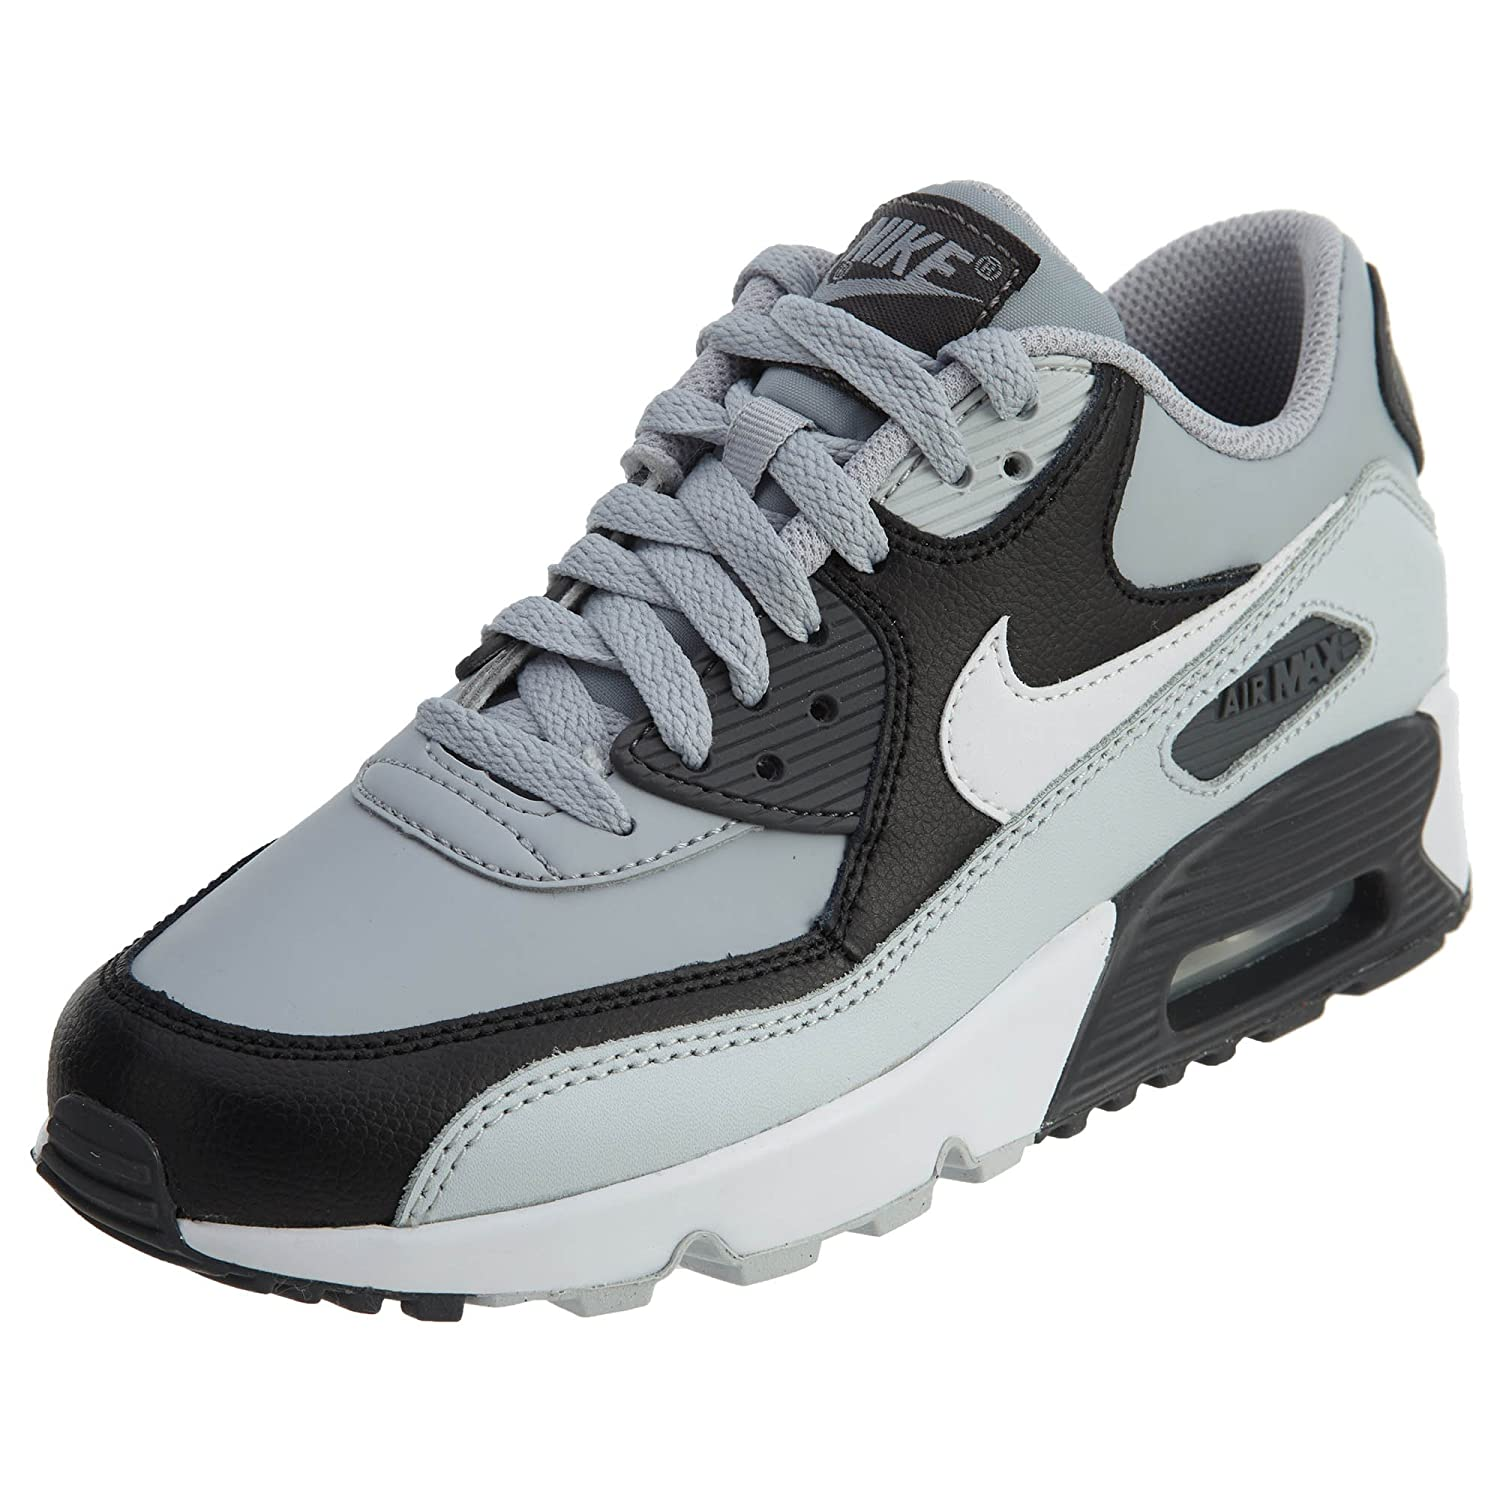 NIKE Kids Air Max 90 LTR (GS) Running Shoe B0059YIF36 6 M US|Wolf Grey/White-Pure Platinum-Black